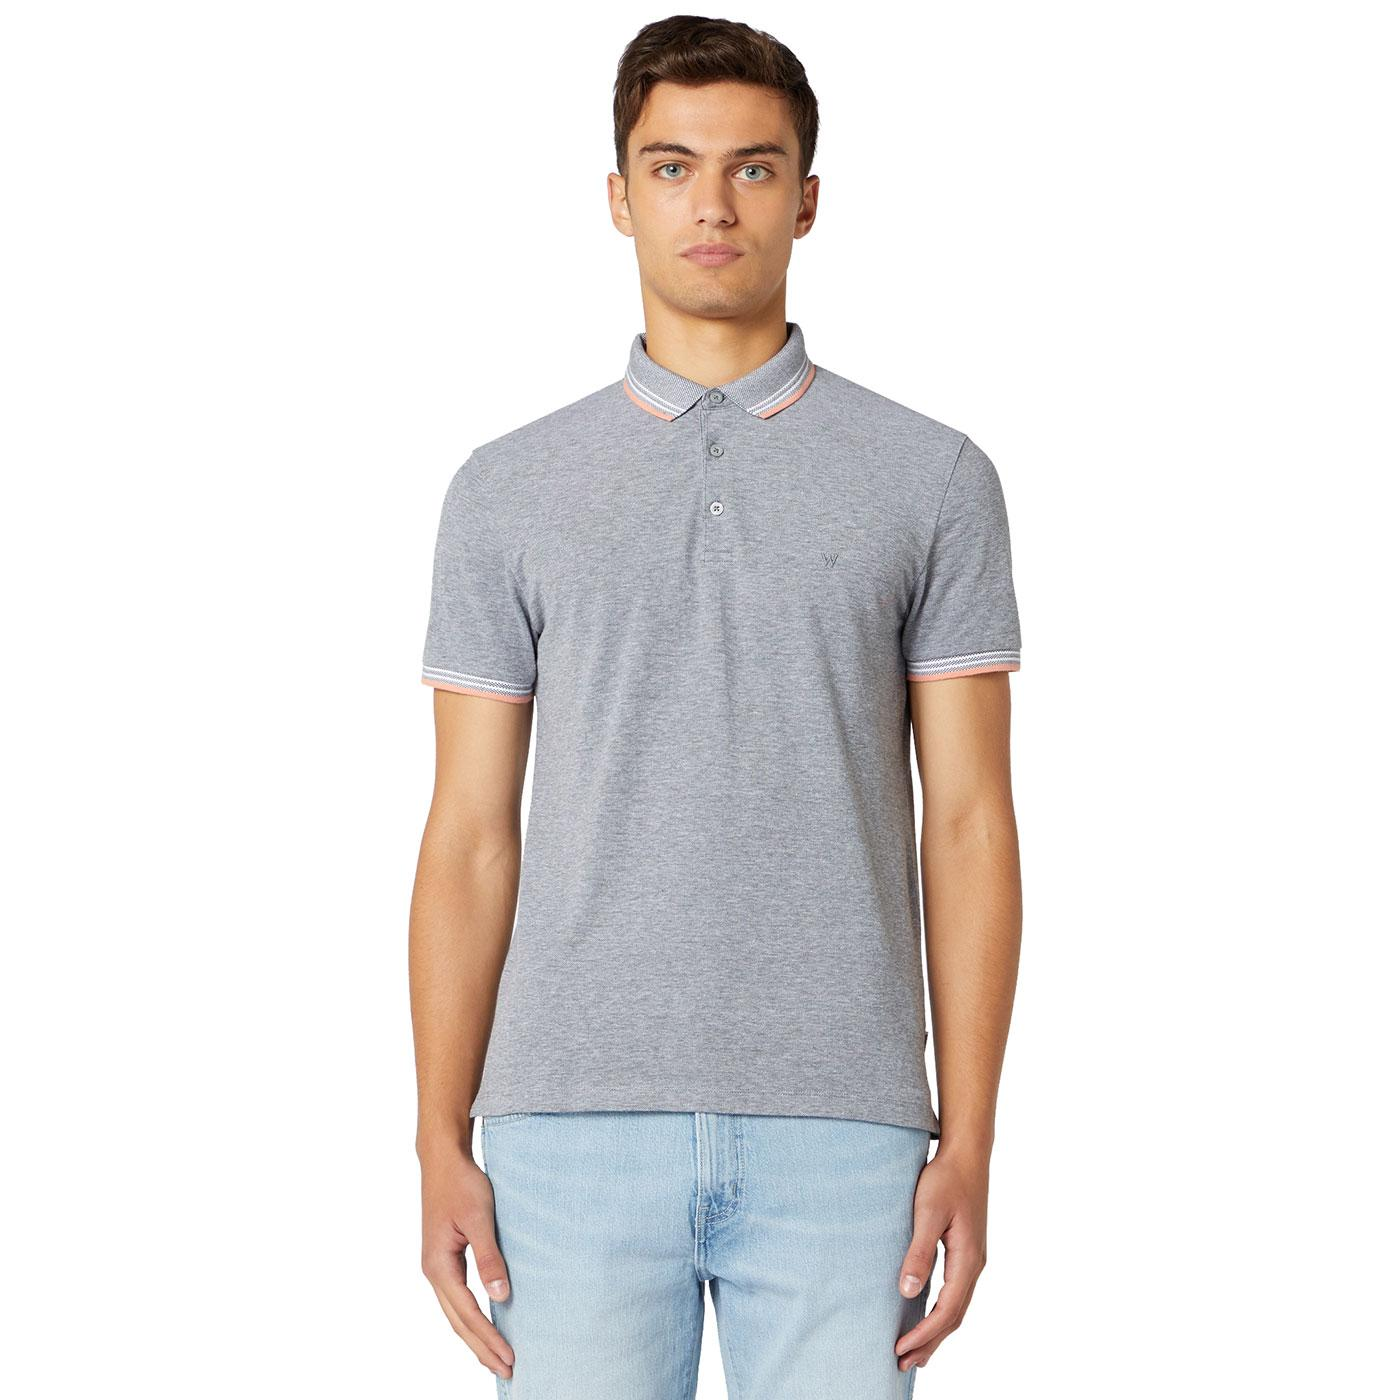 Wrangler Men's Retro Refined Pique Polo Shirt CG